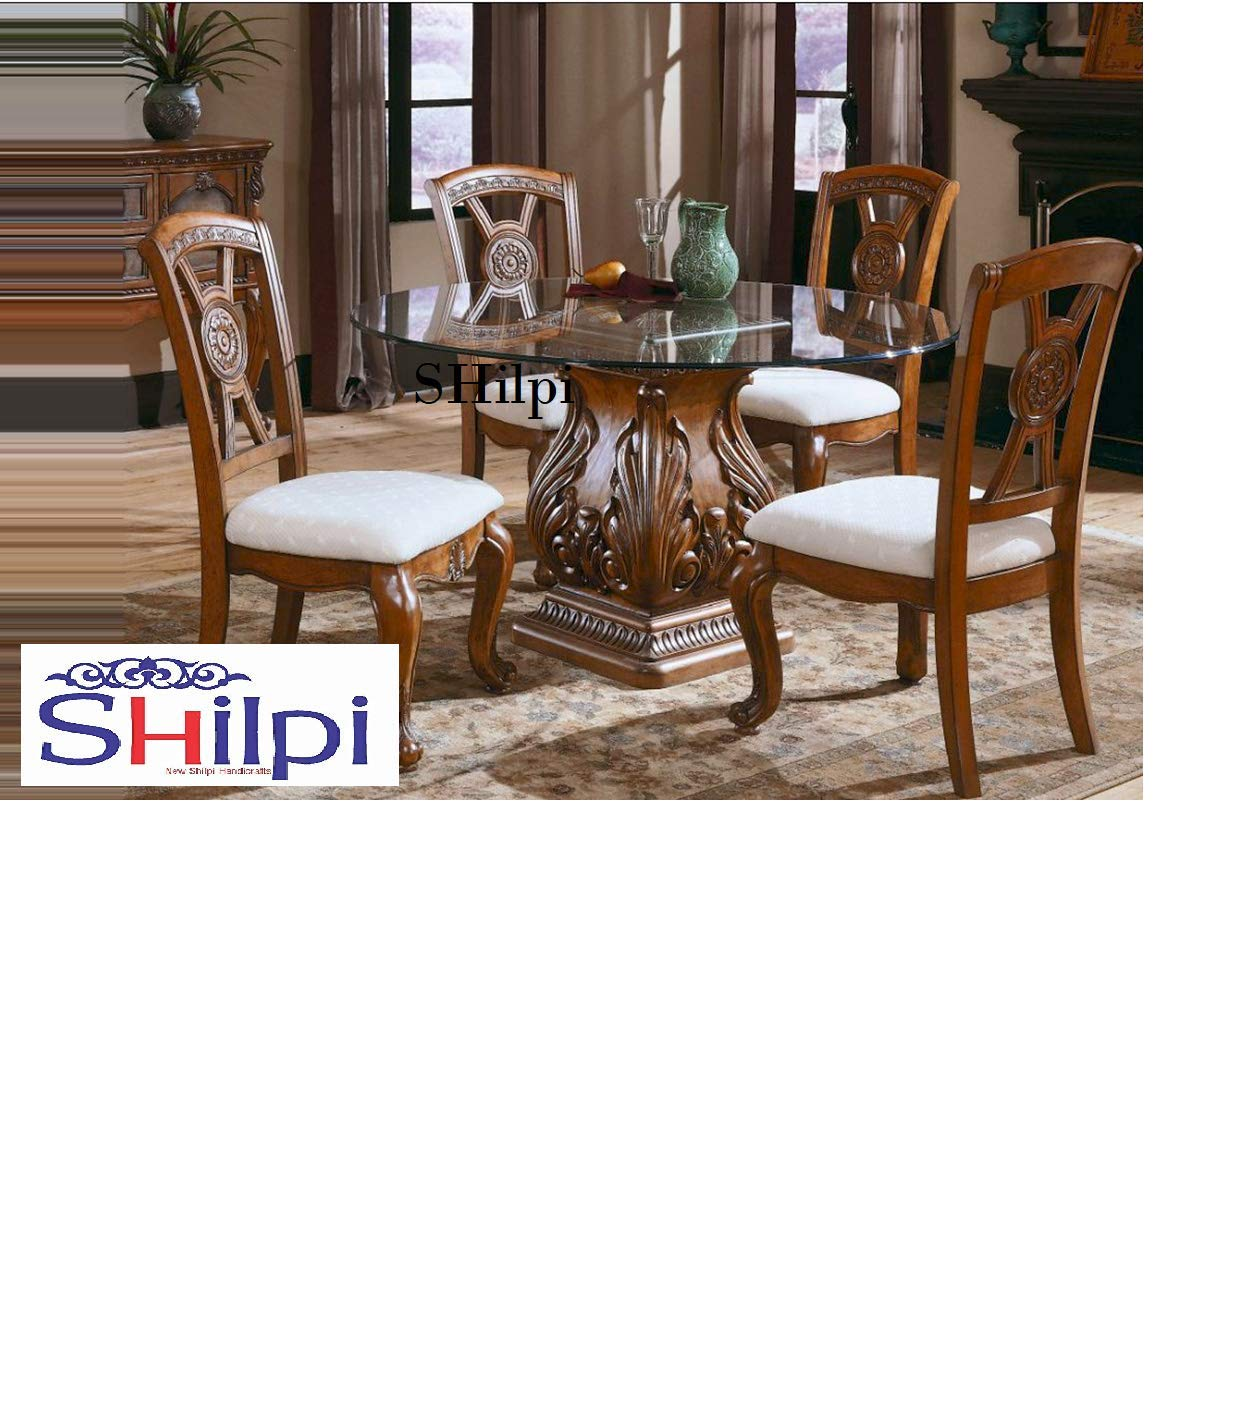 Shilpi Shessham Wood Dining Table With 4 Chair Set Without Glass Top Design 6 Amazon In Home Kitchen